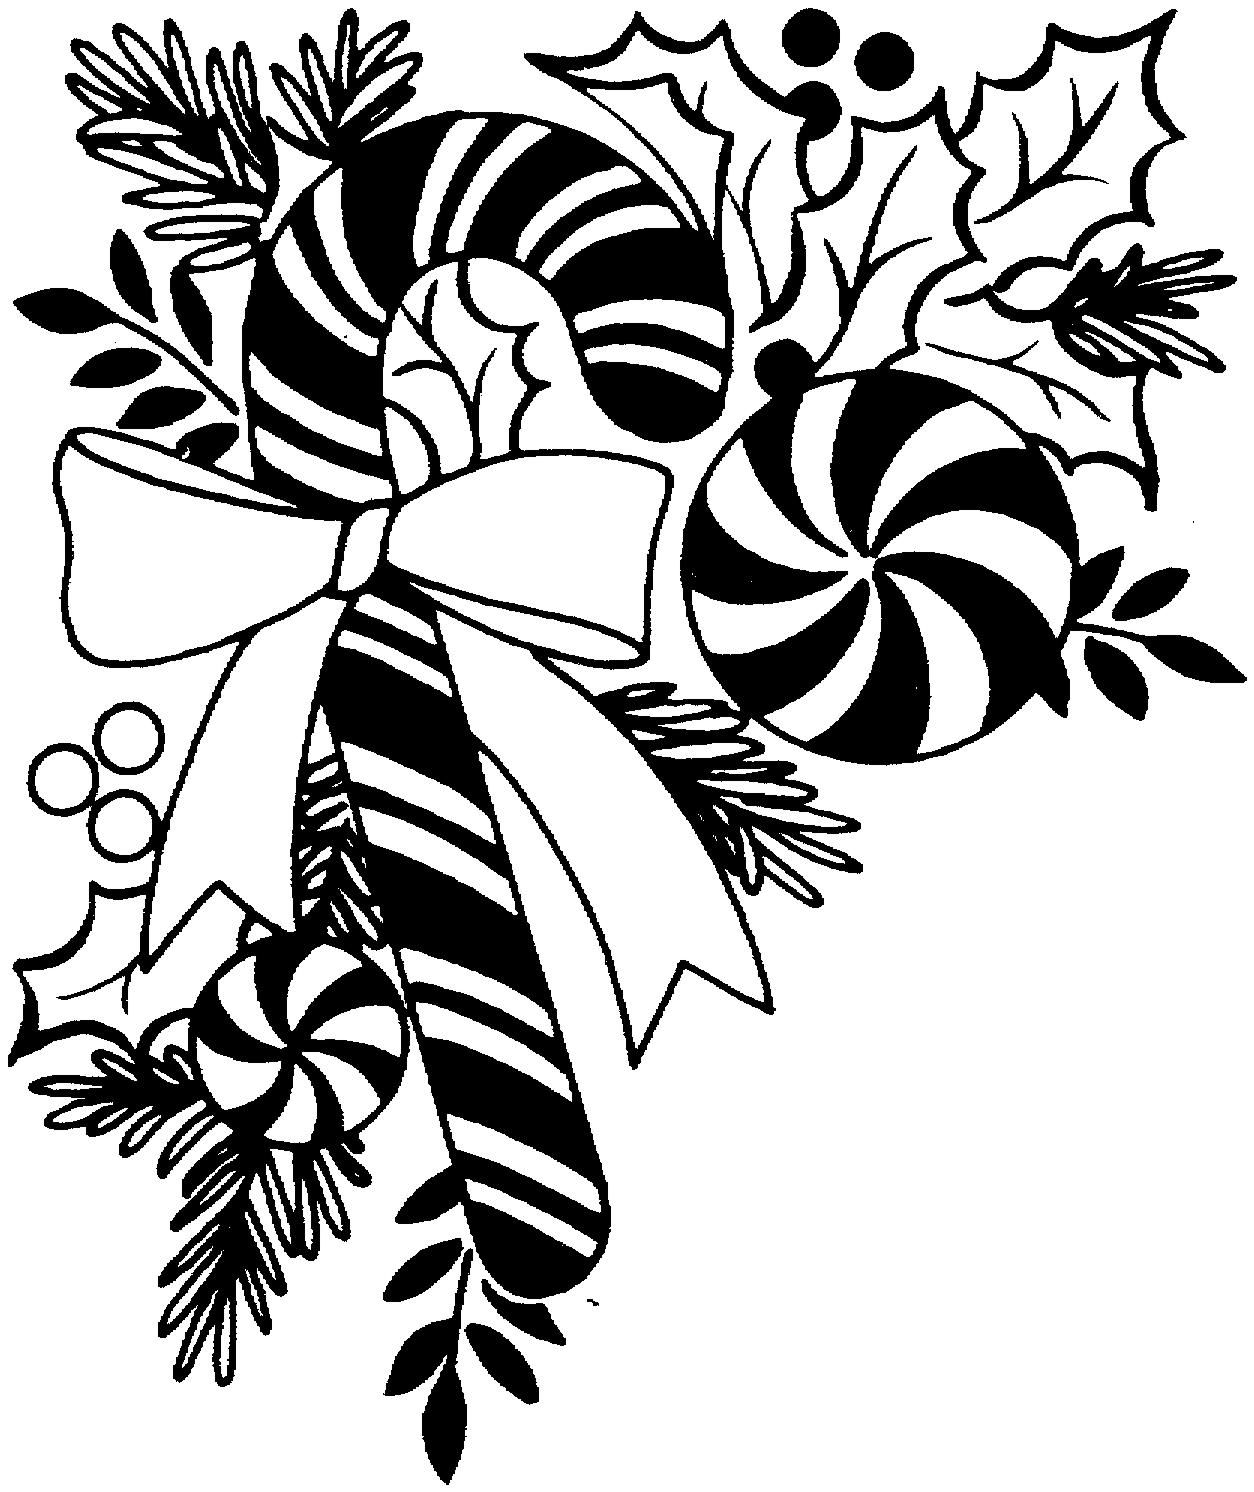 free christmas clipart borders black and white wallpapers high rh pinterest co uk black and white christian clipart black and white christmas clip art religious